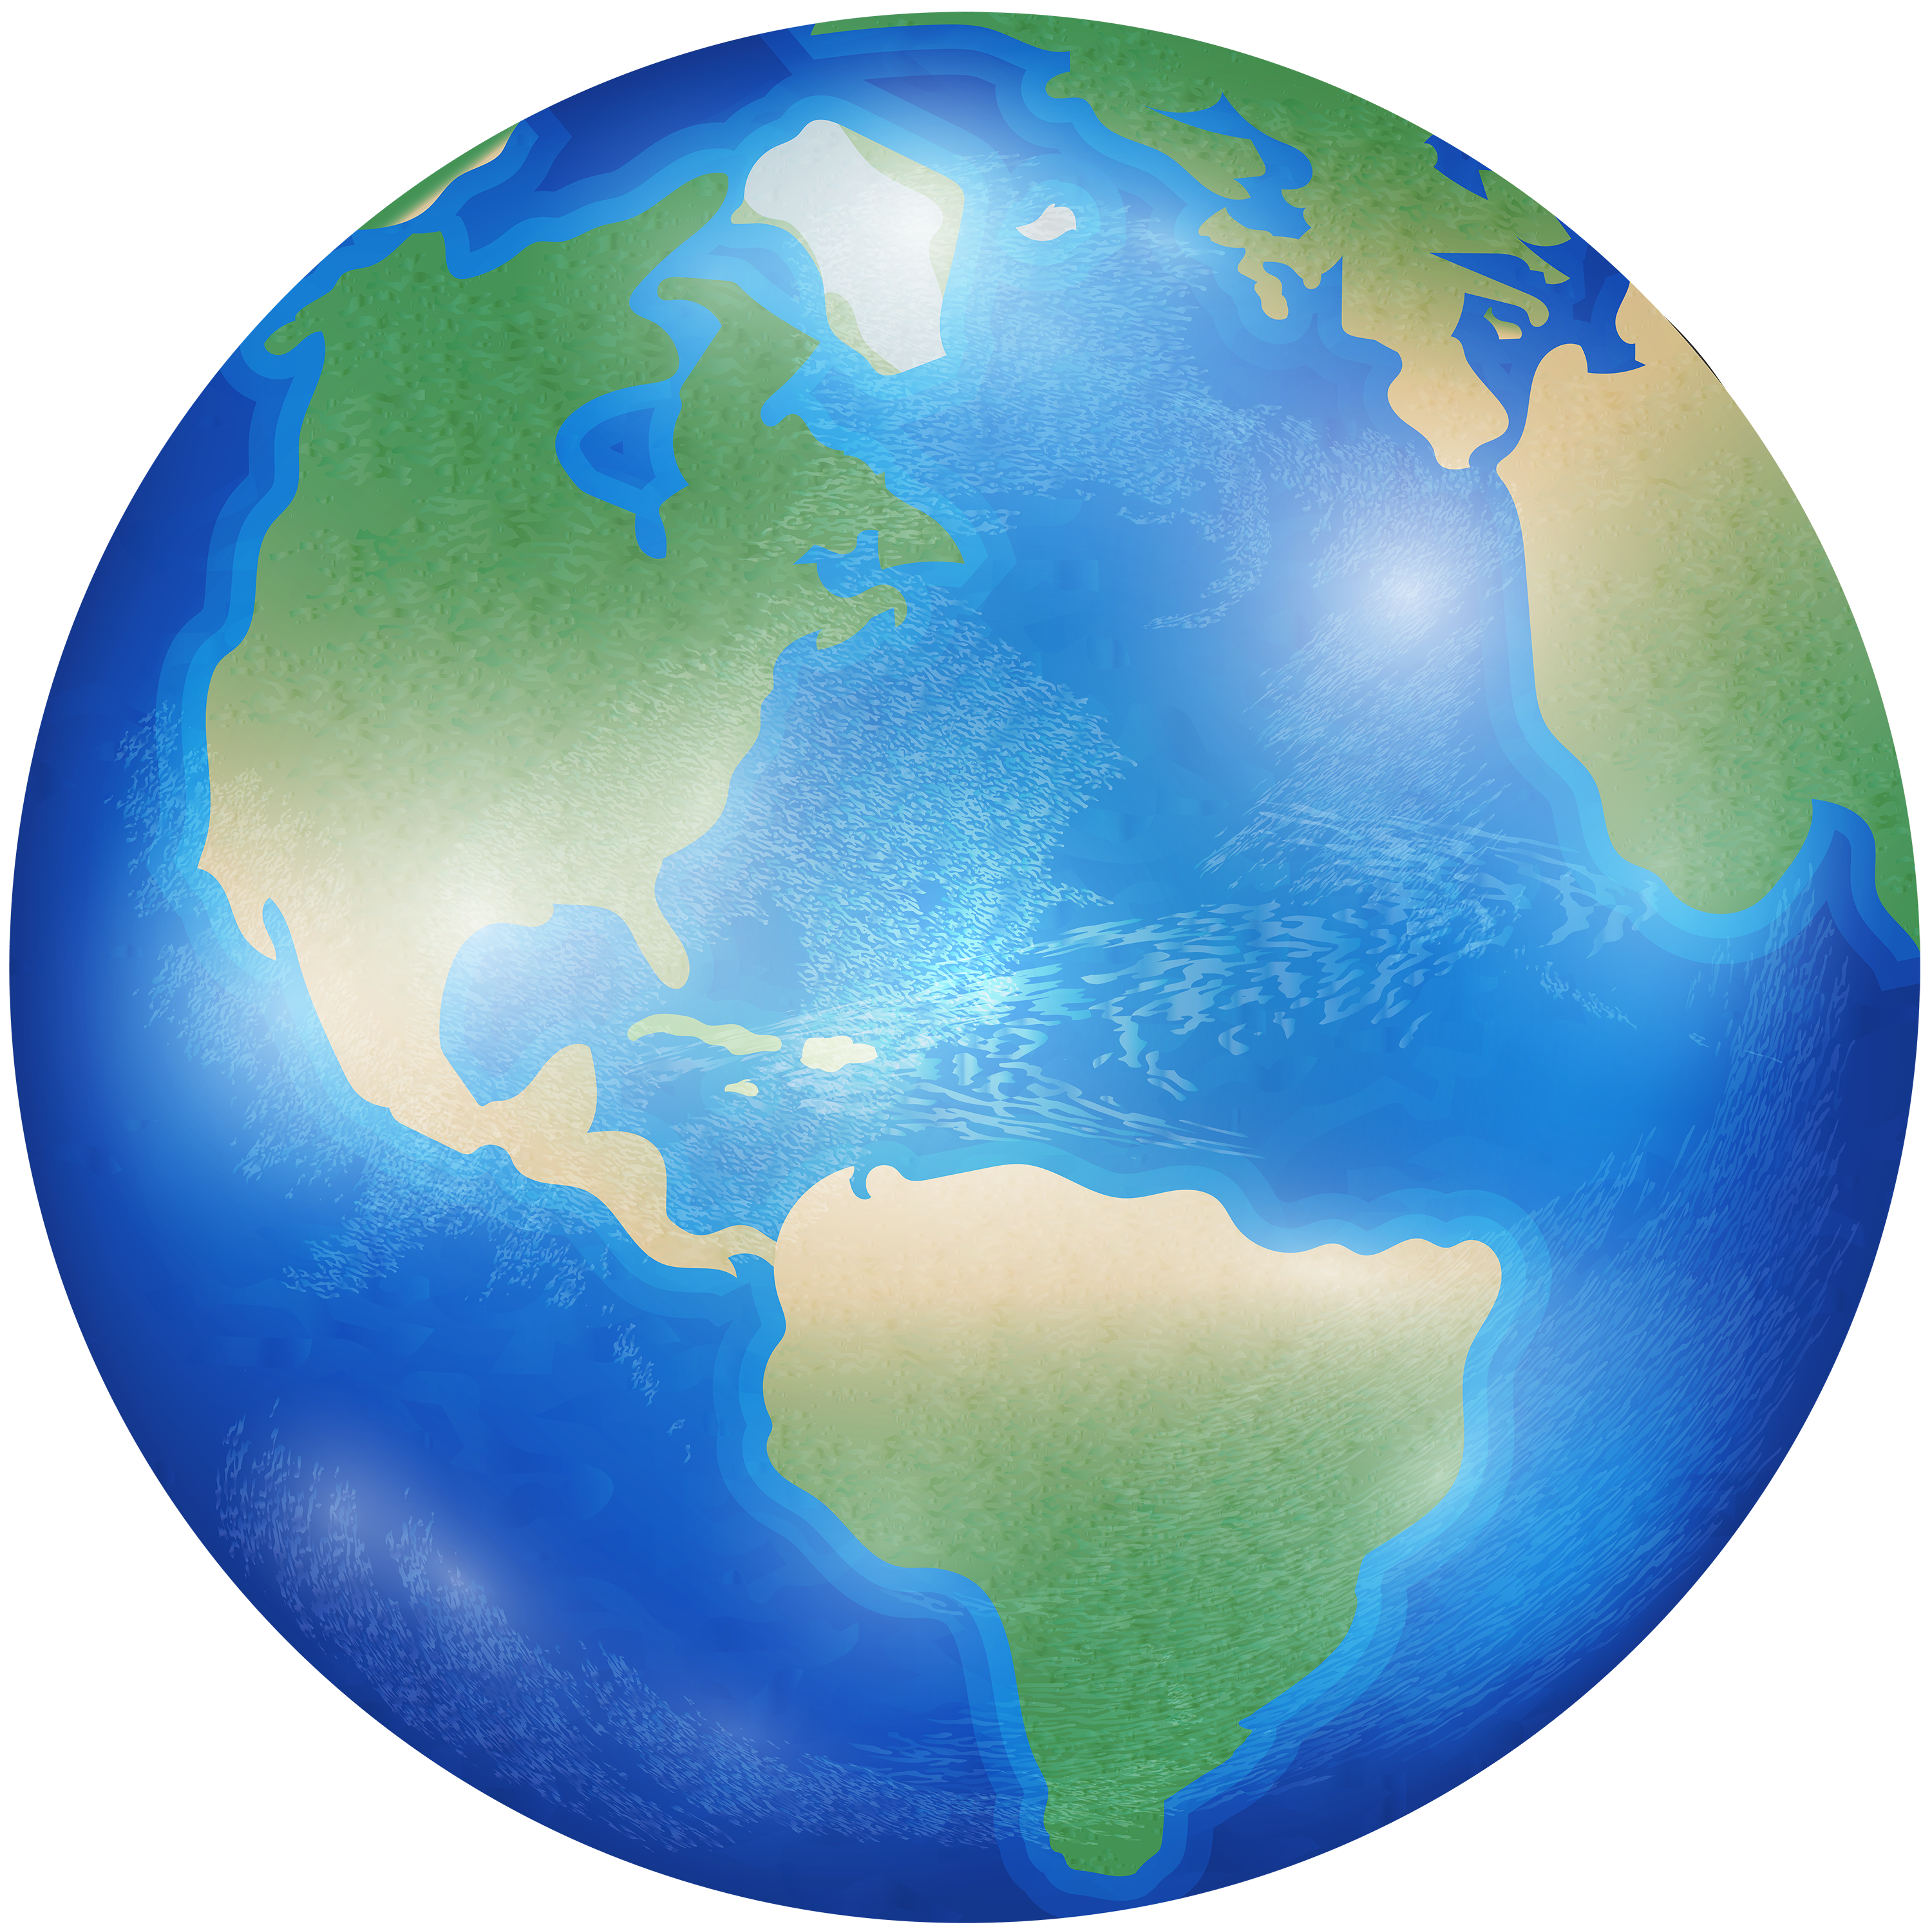 Clipart world home earth. Png clip art image